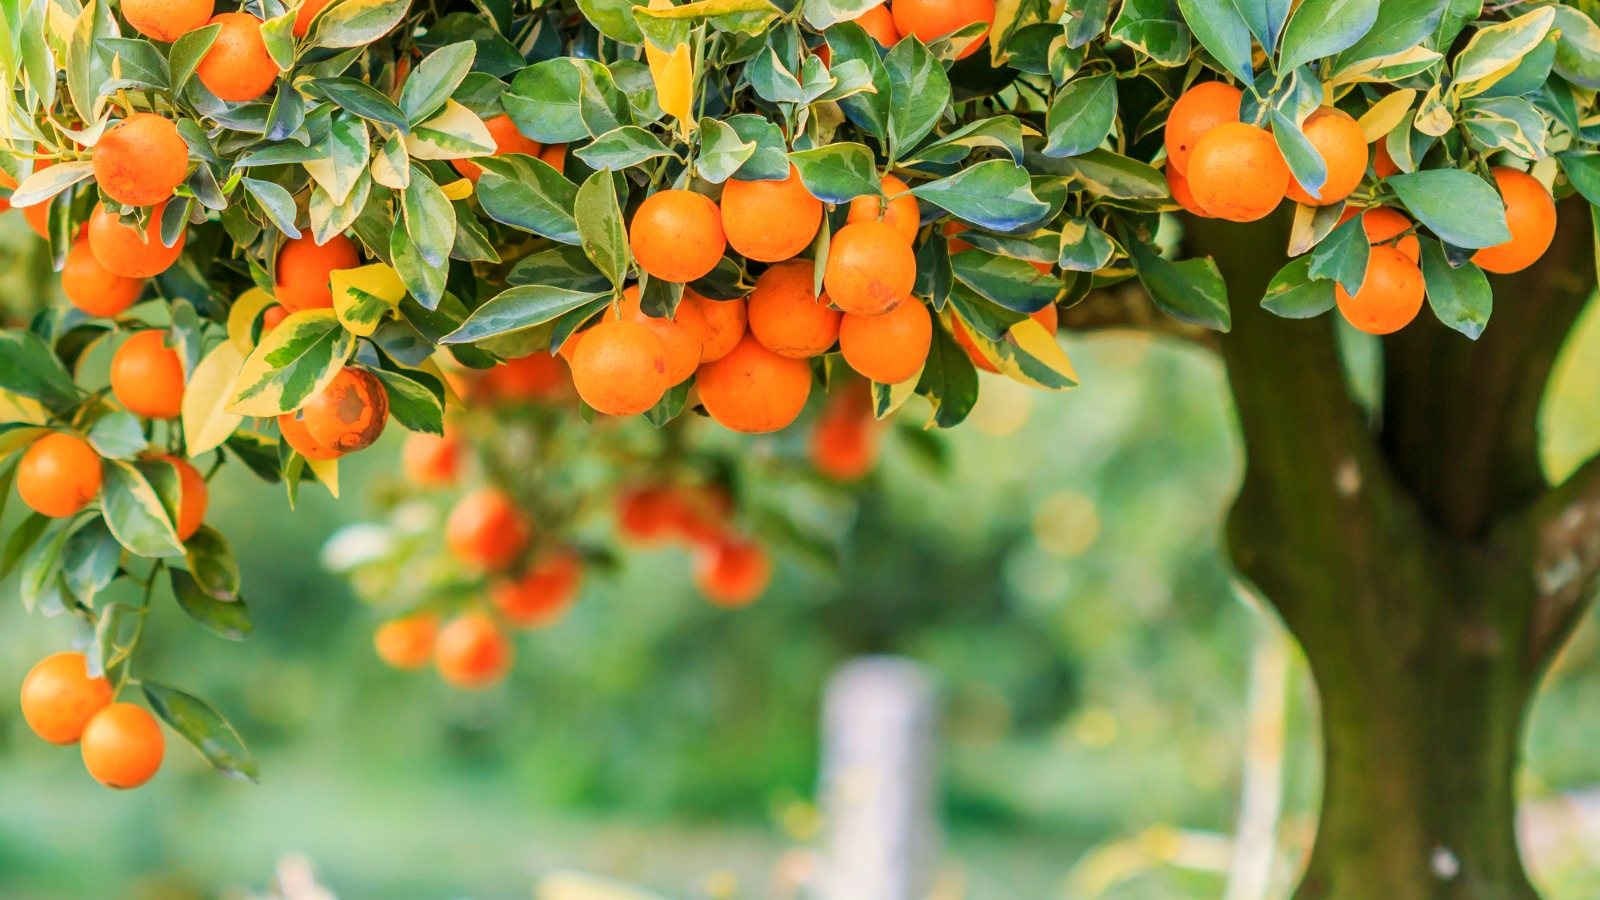 Know the best time and tools for pruning citrus trees